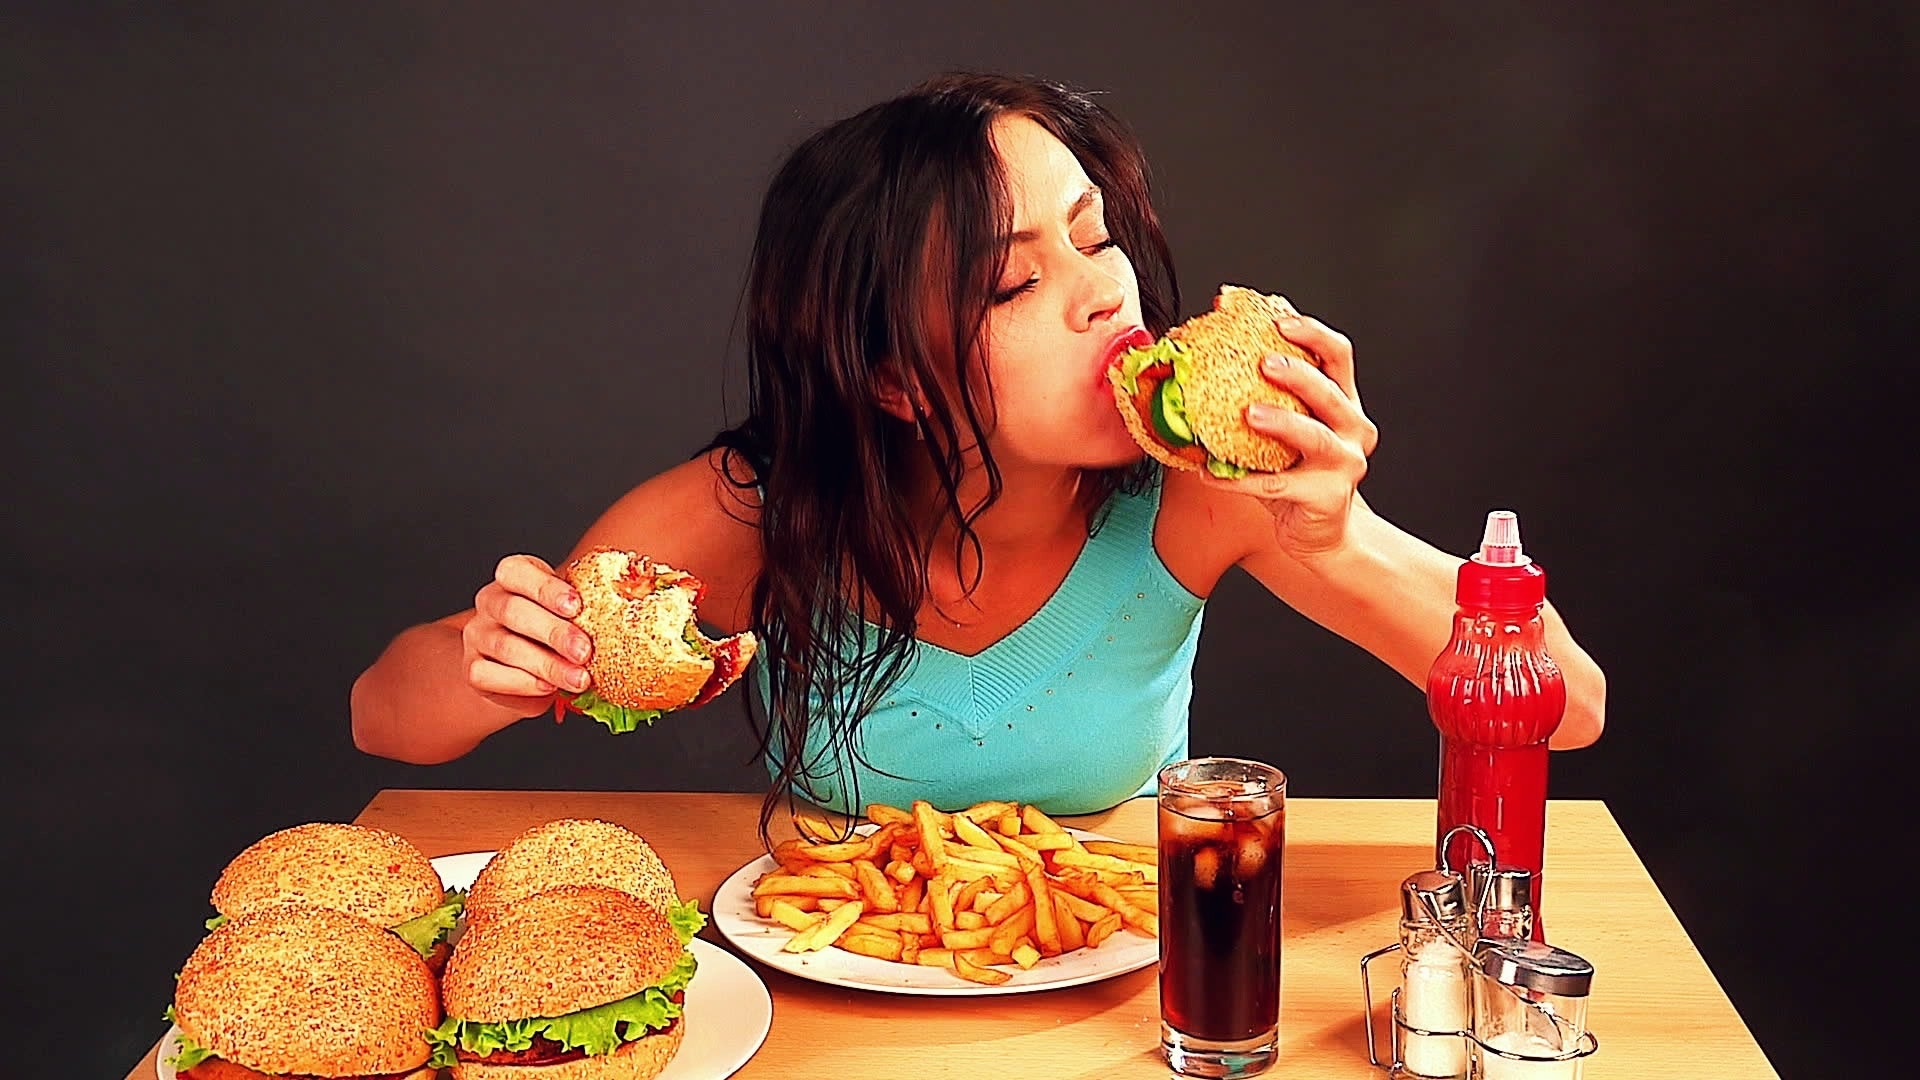 stock-footage-woman-eating-fast-food-time-lapse1